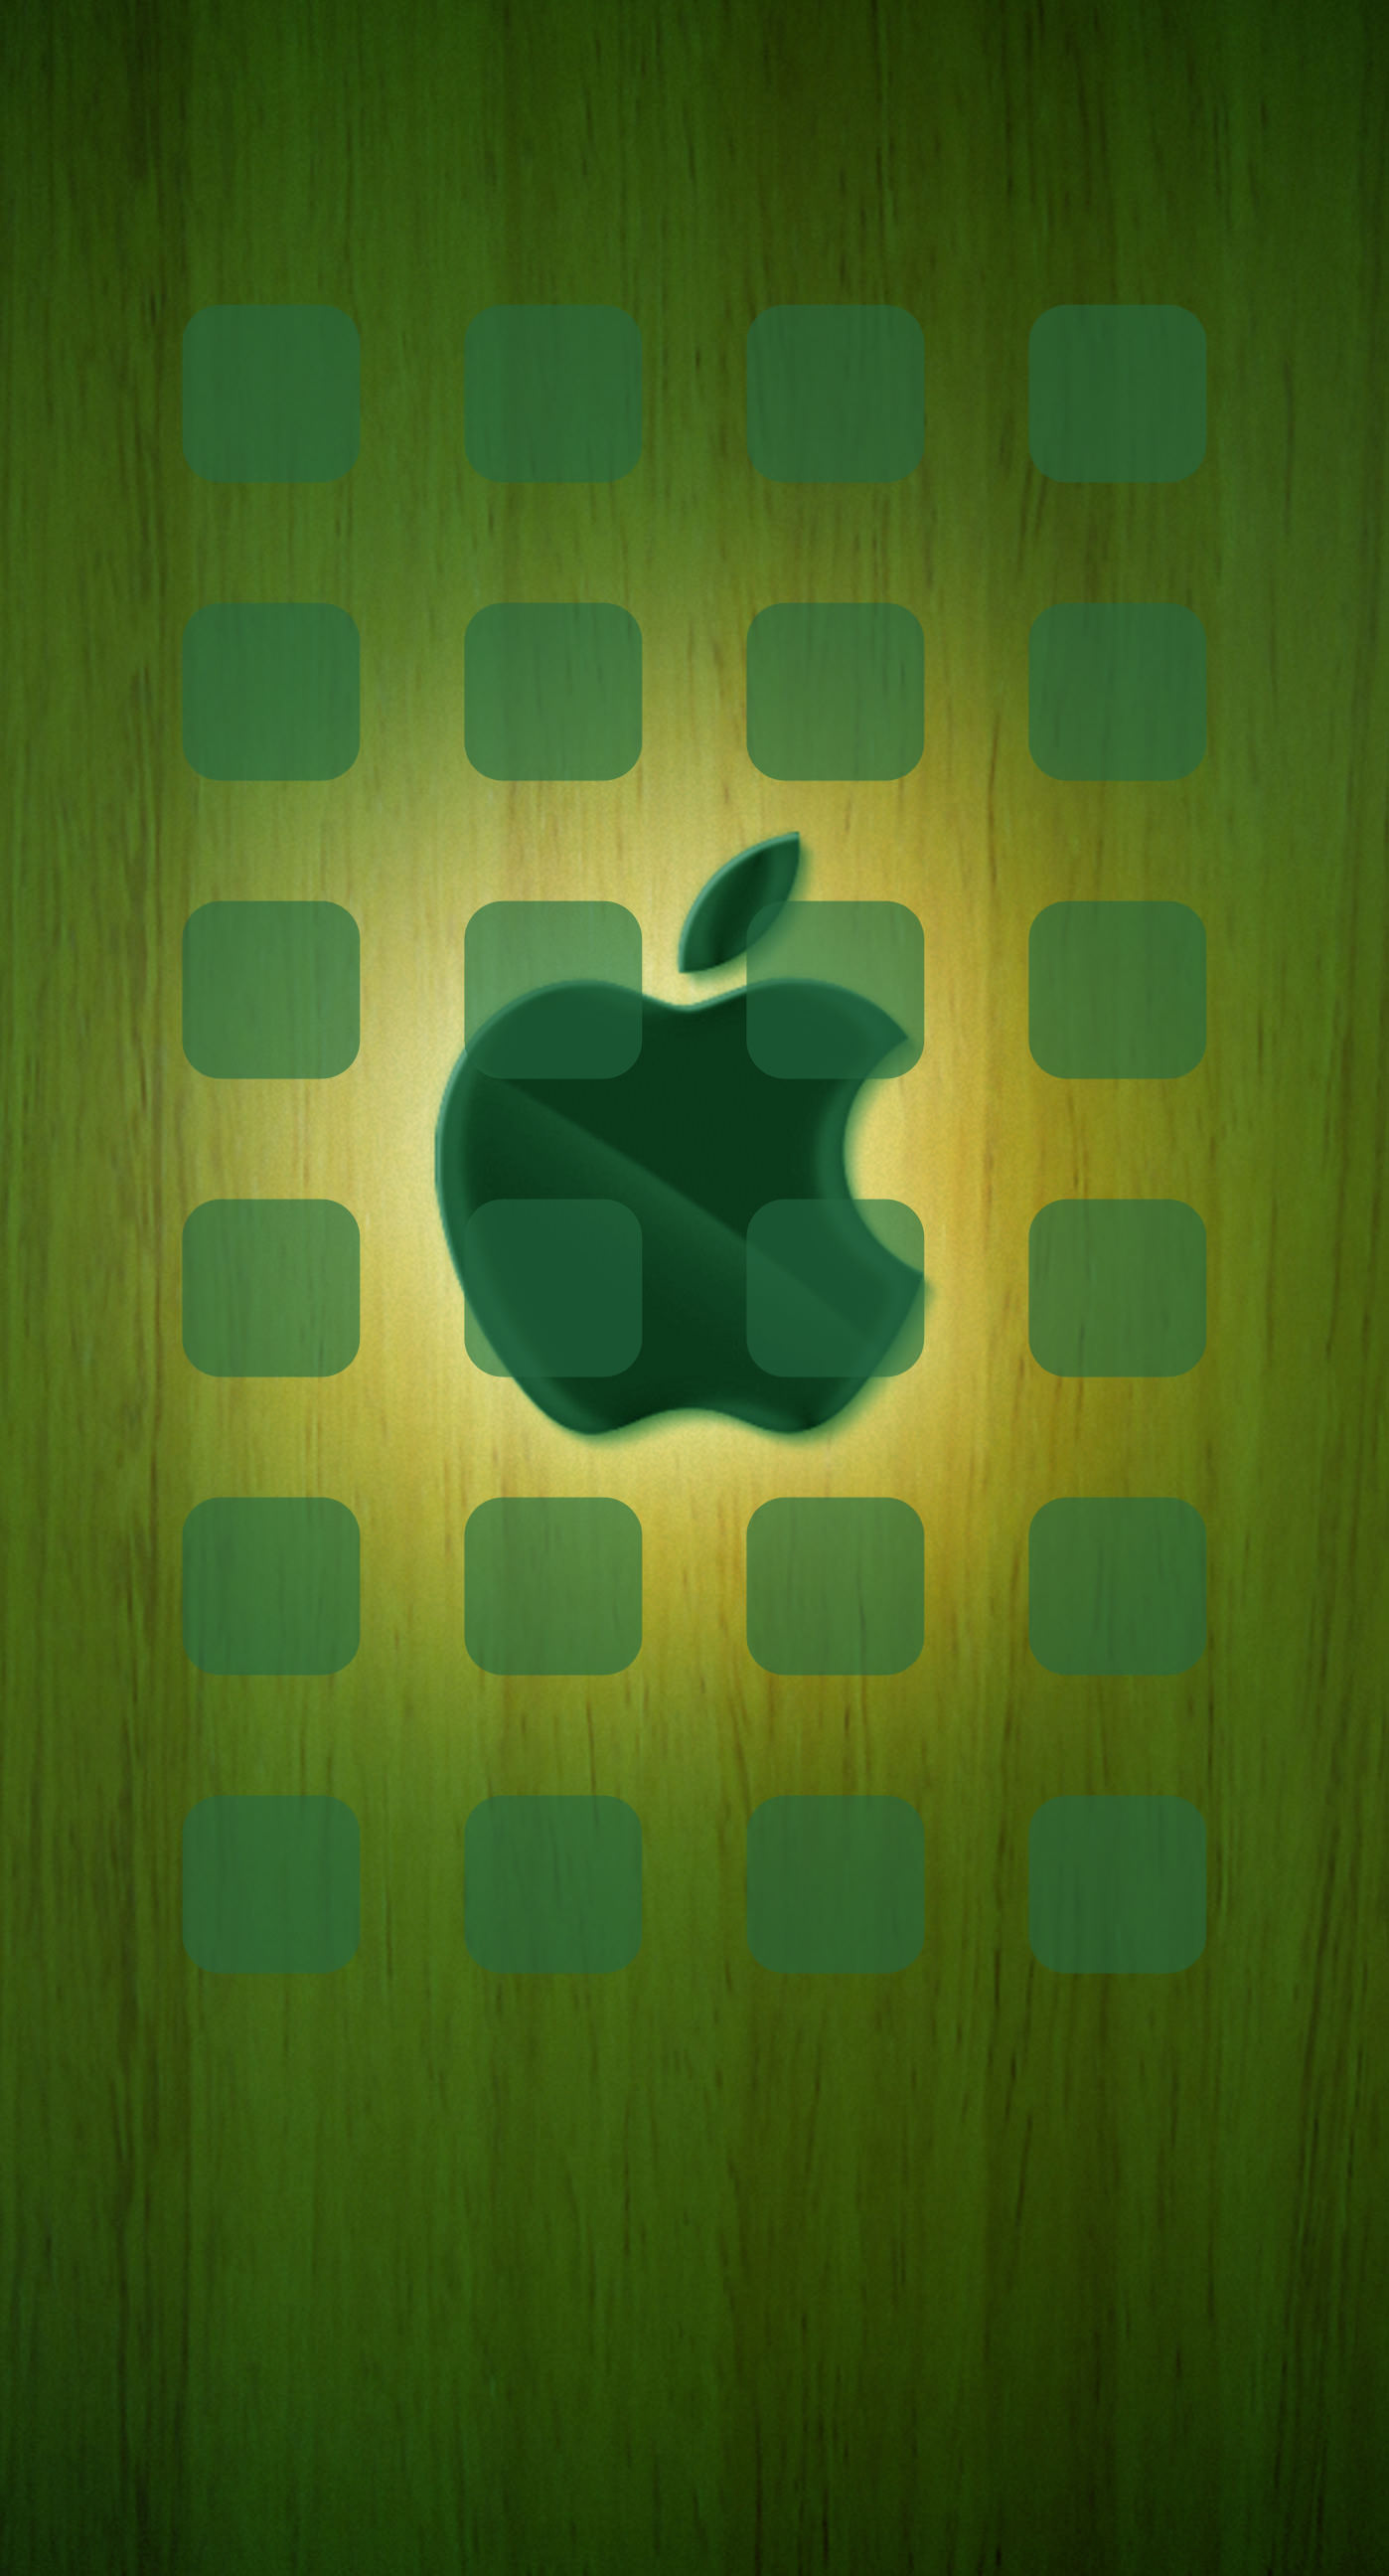 Apple Logo Shelf Cool Plate Yellow Green Wallpaper Sc Iphone7plus